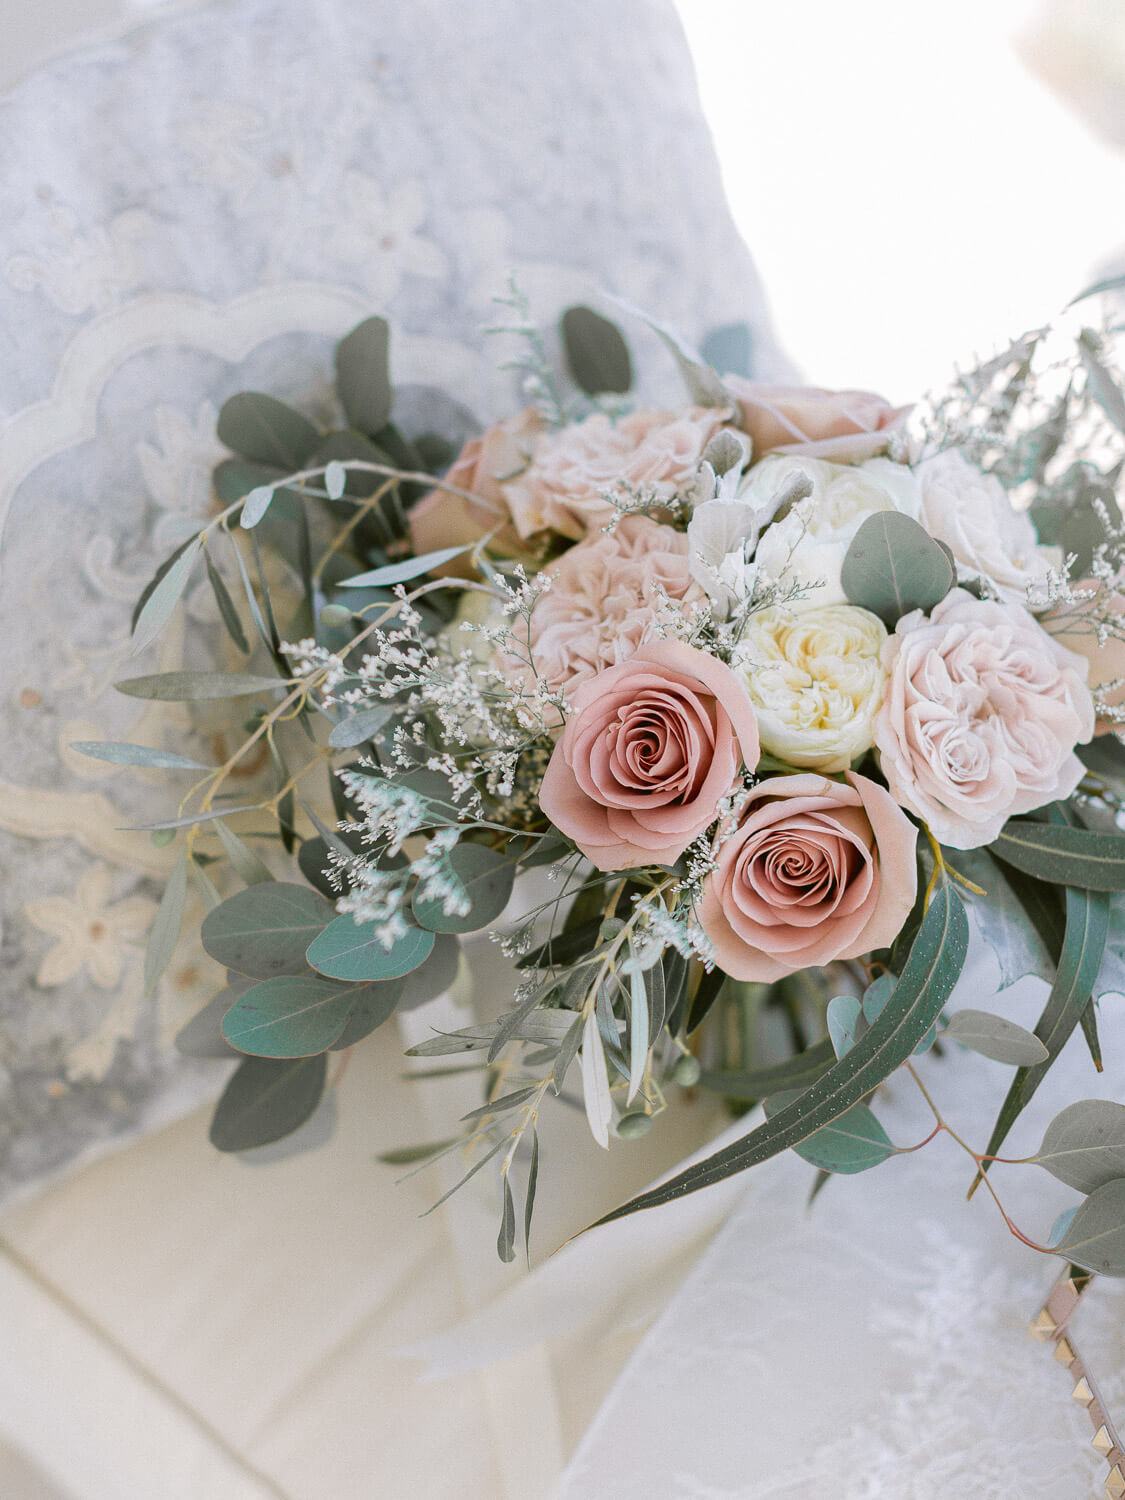 bridal bouquet in blush hues for a destination wedding in the Algarve by Portugal Wedding Photographer